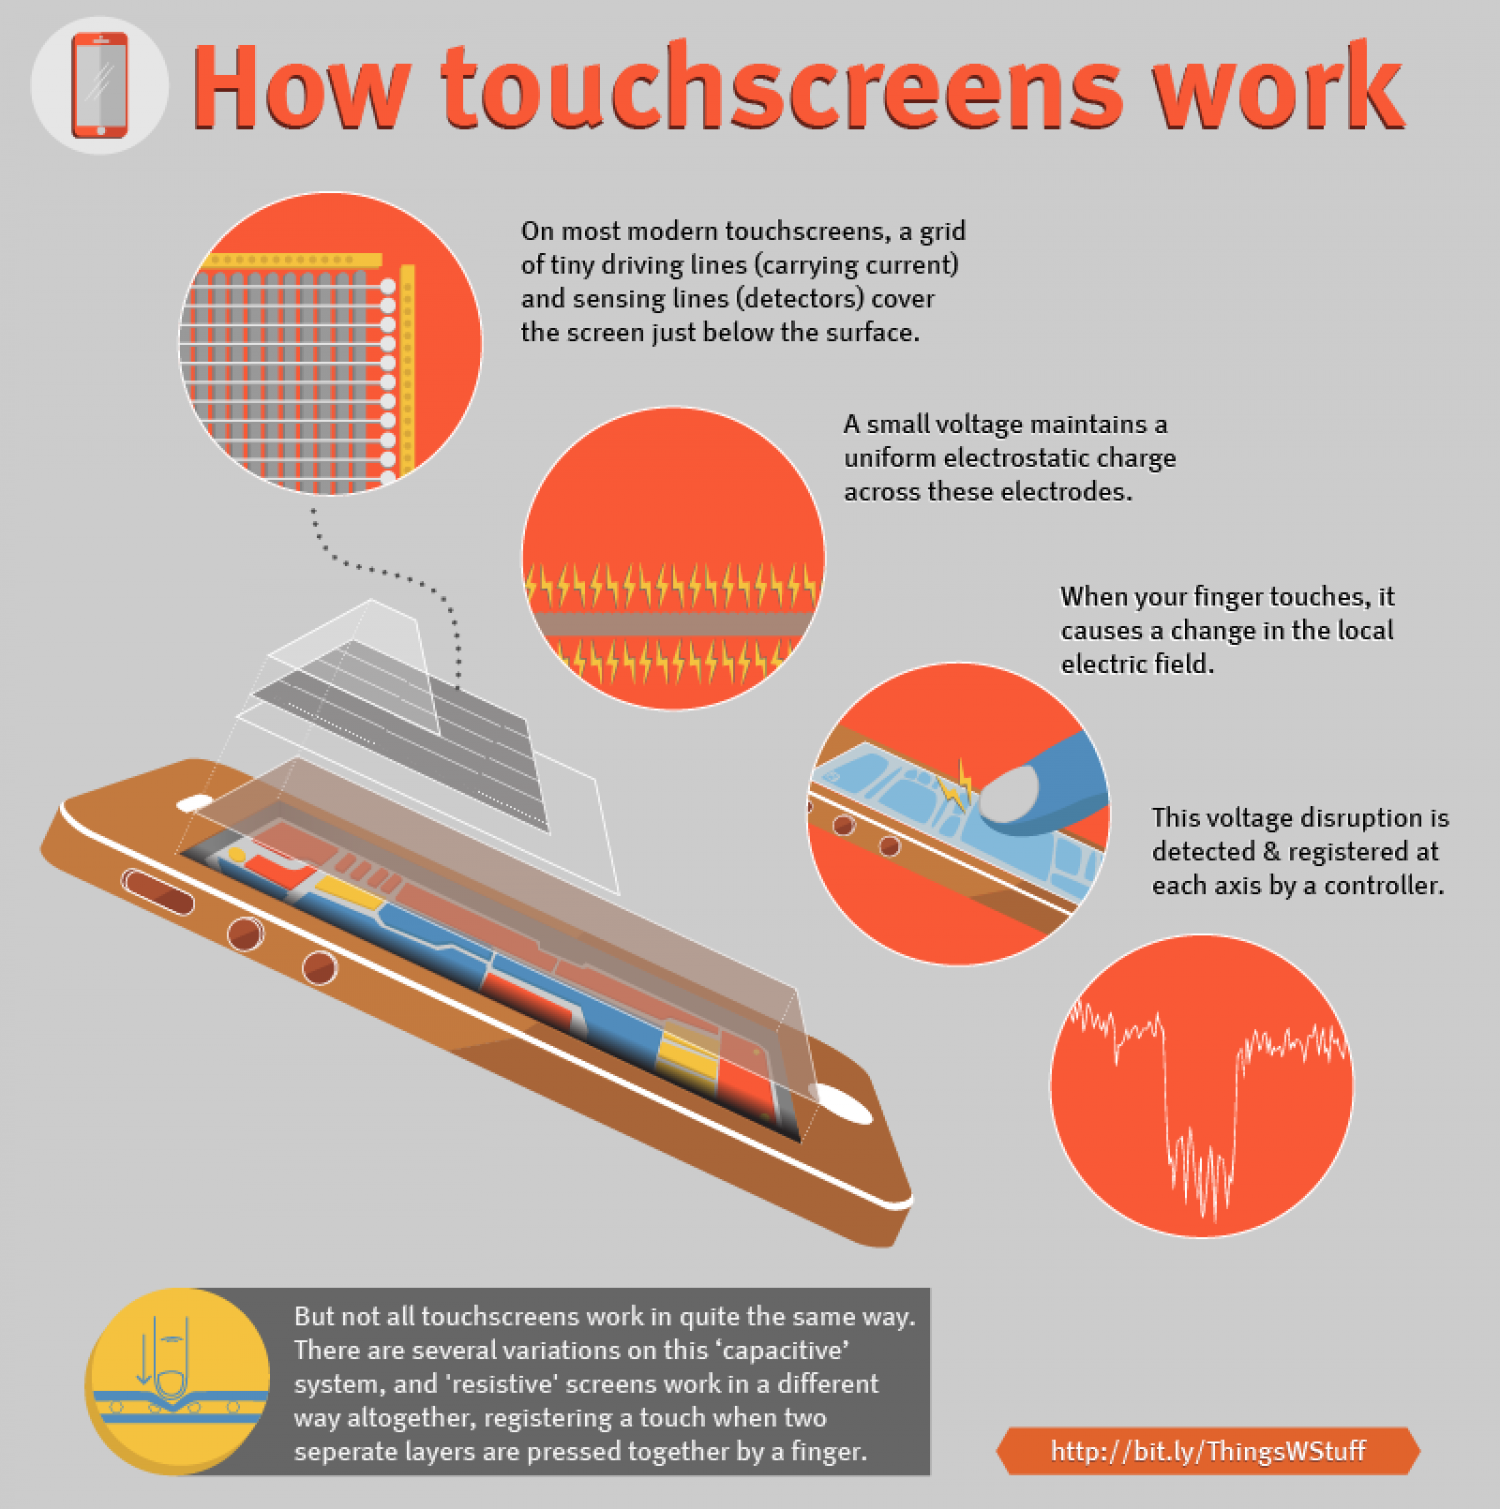 How touchscreens work Infographic